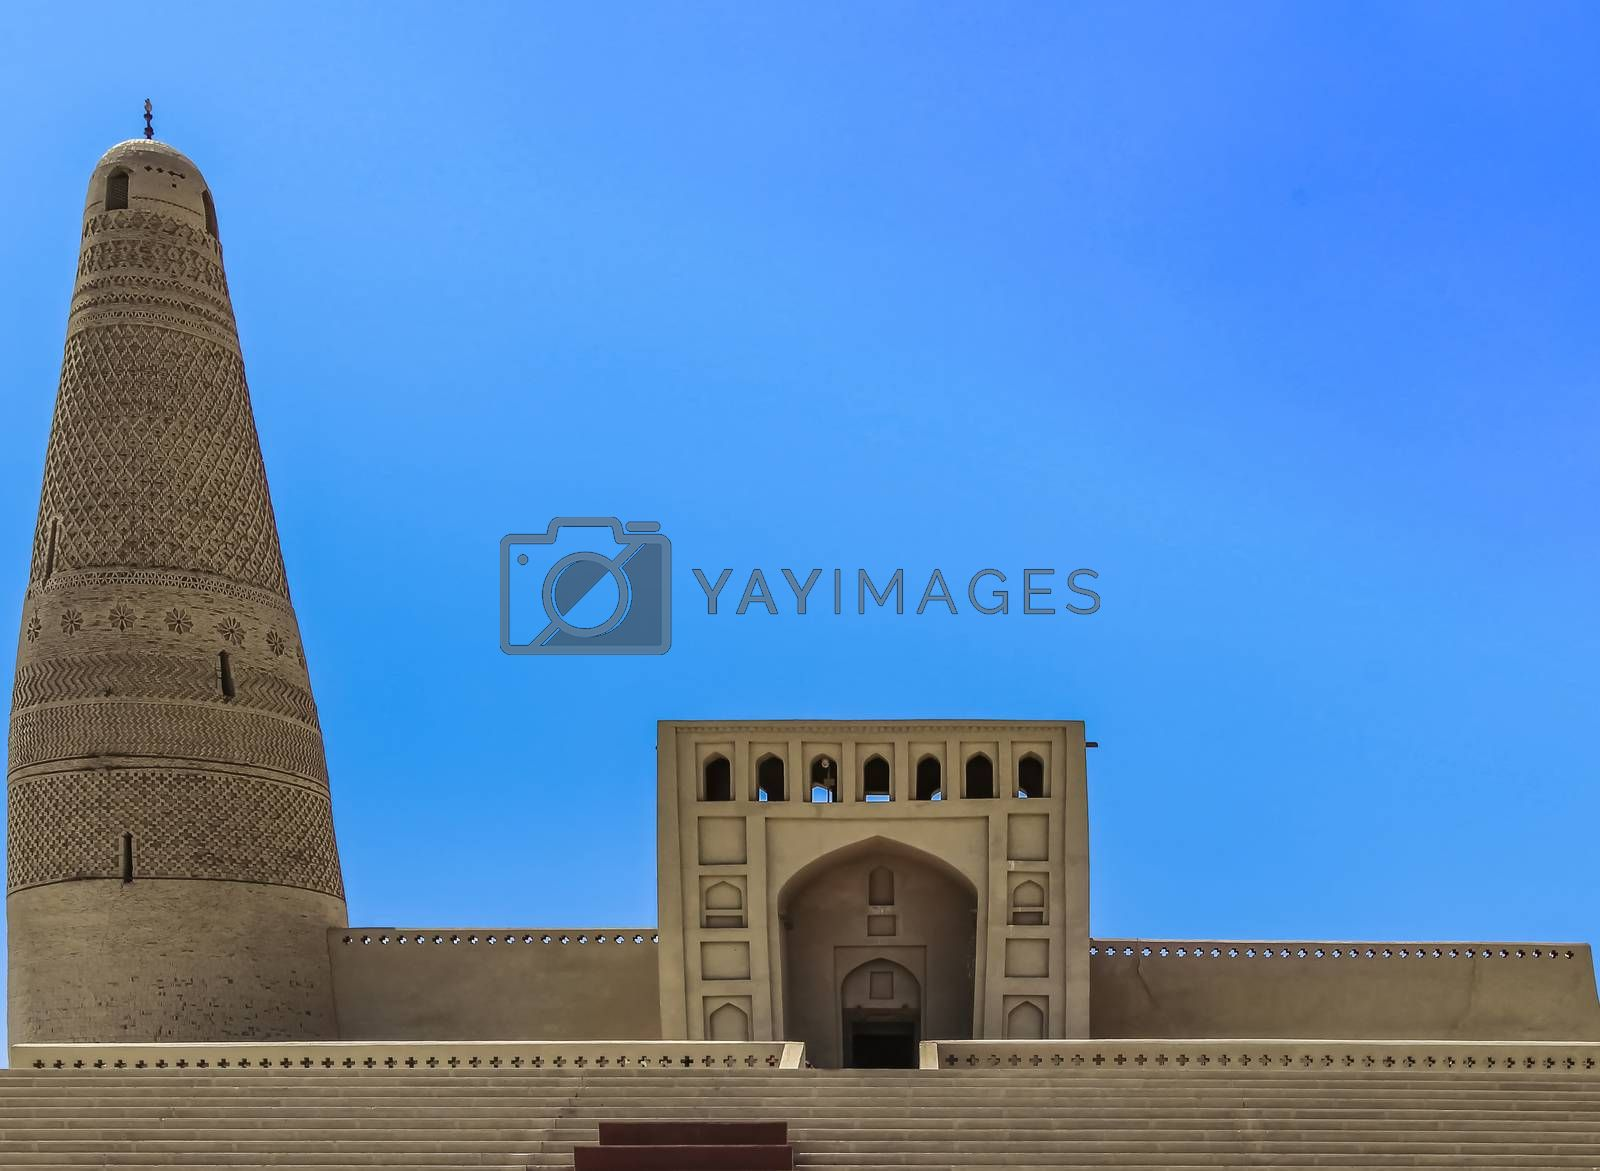 The Emin Minaret and mosque is a islamic building in Turpan, Xinjiang, China completed in 1778